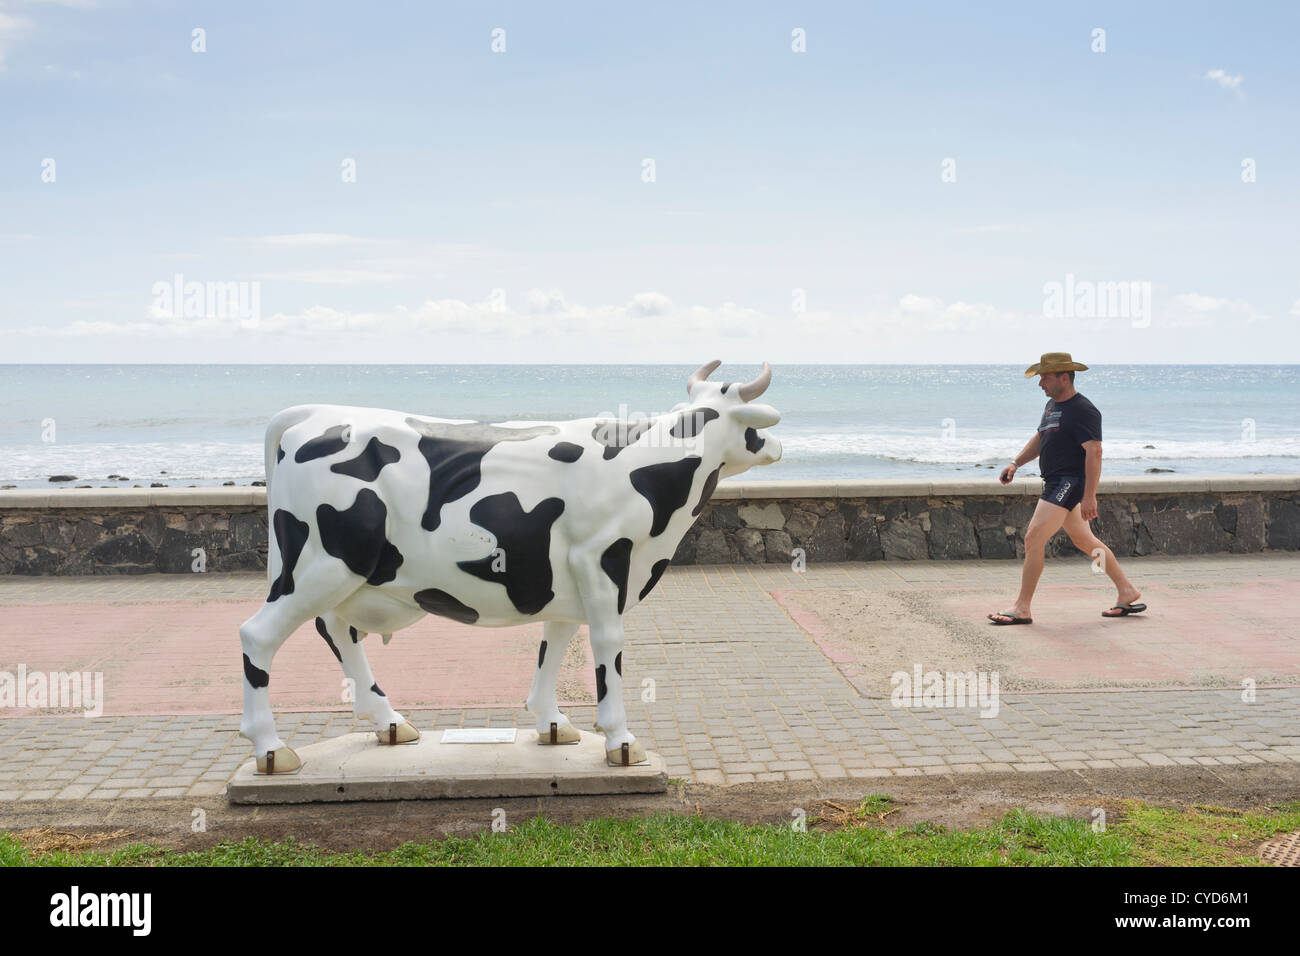 cow-statues-painted-in-various-guises-on